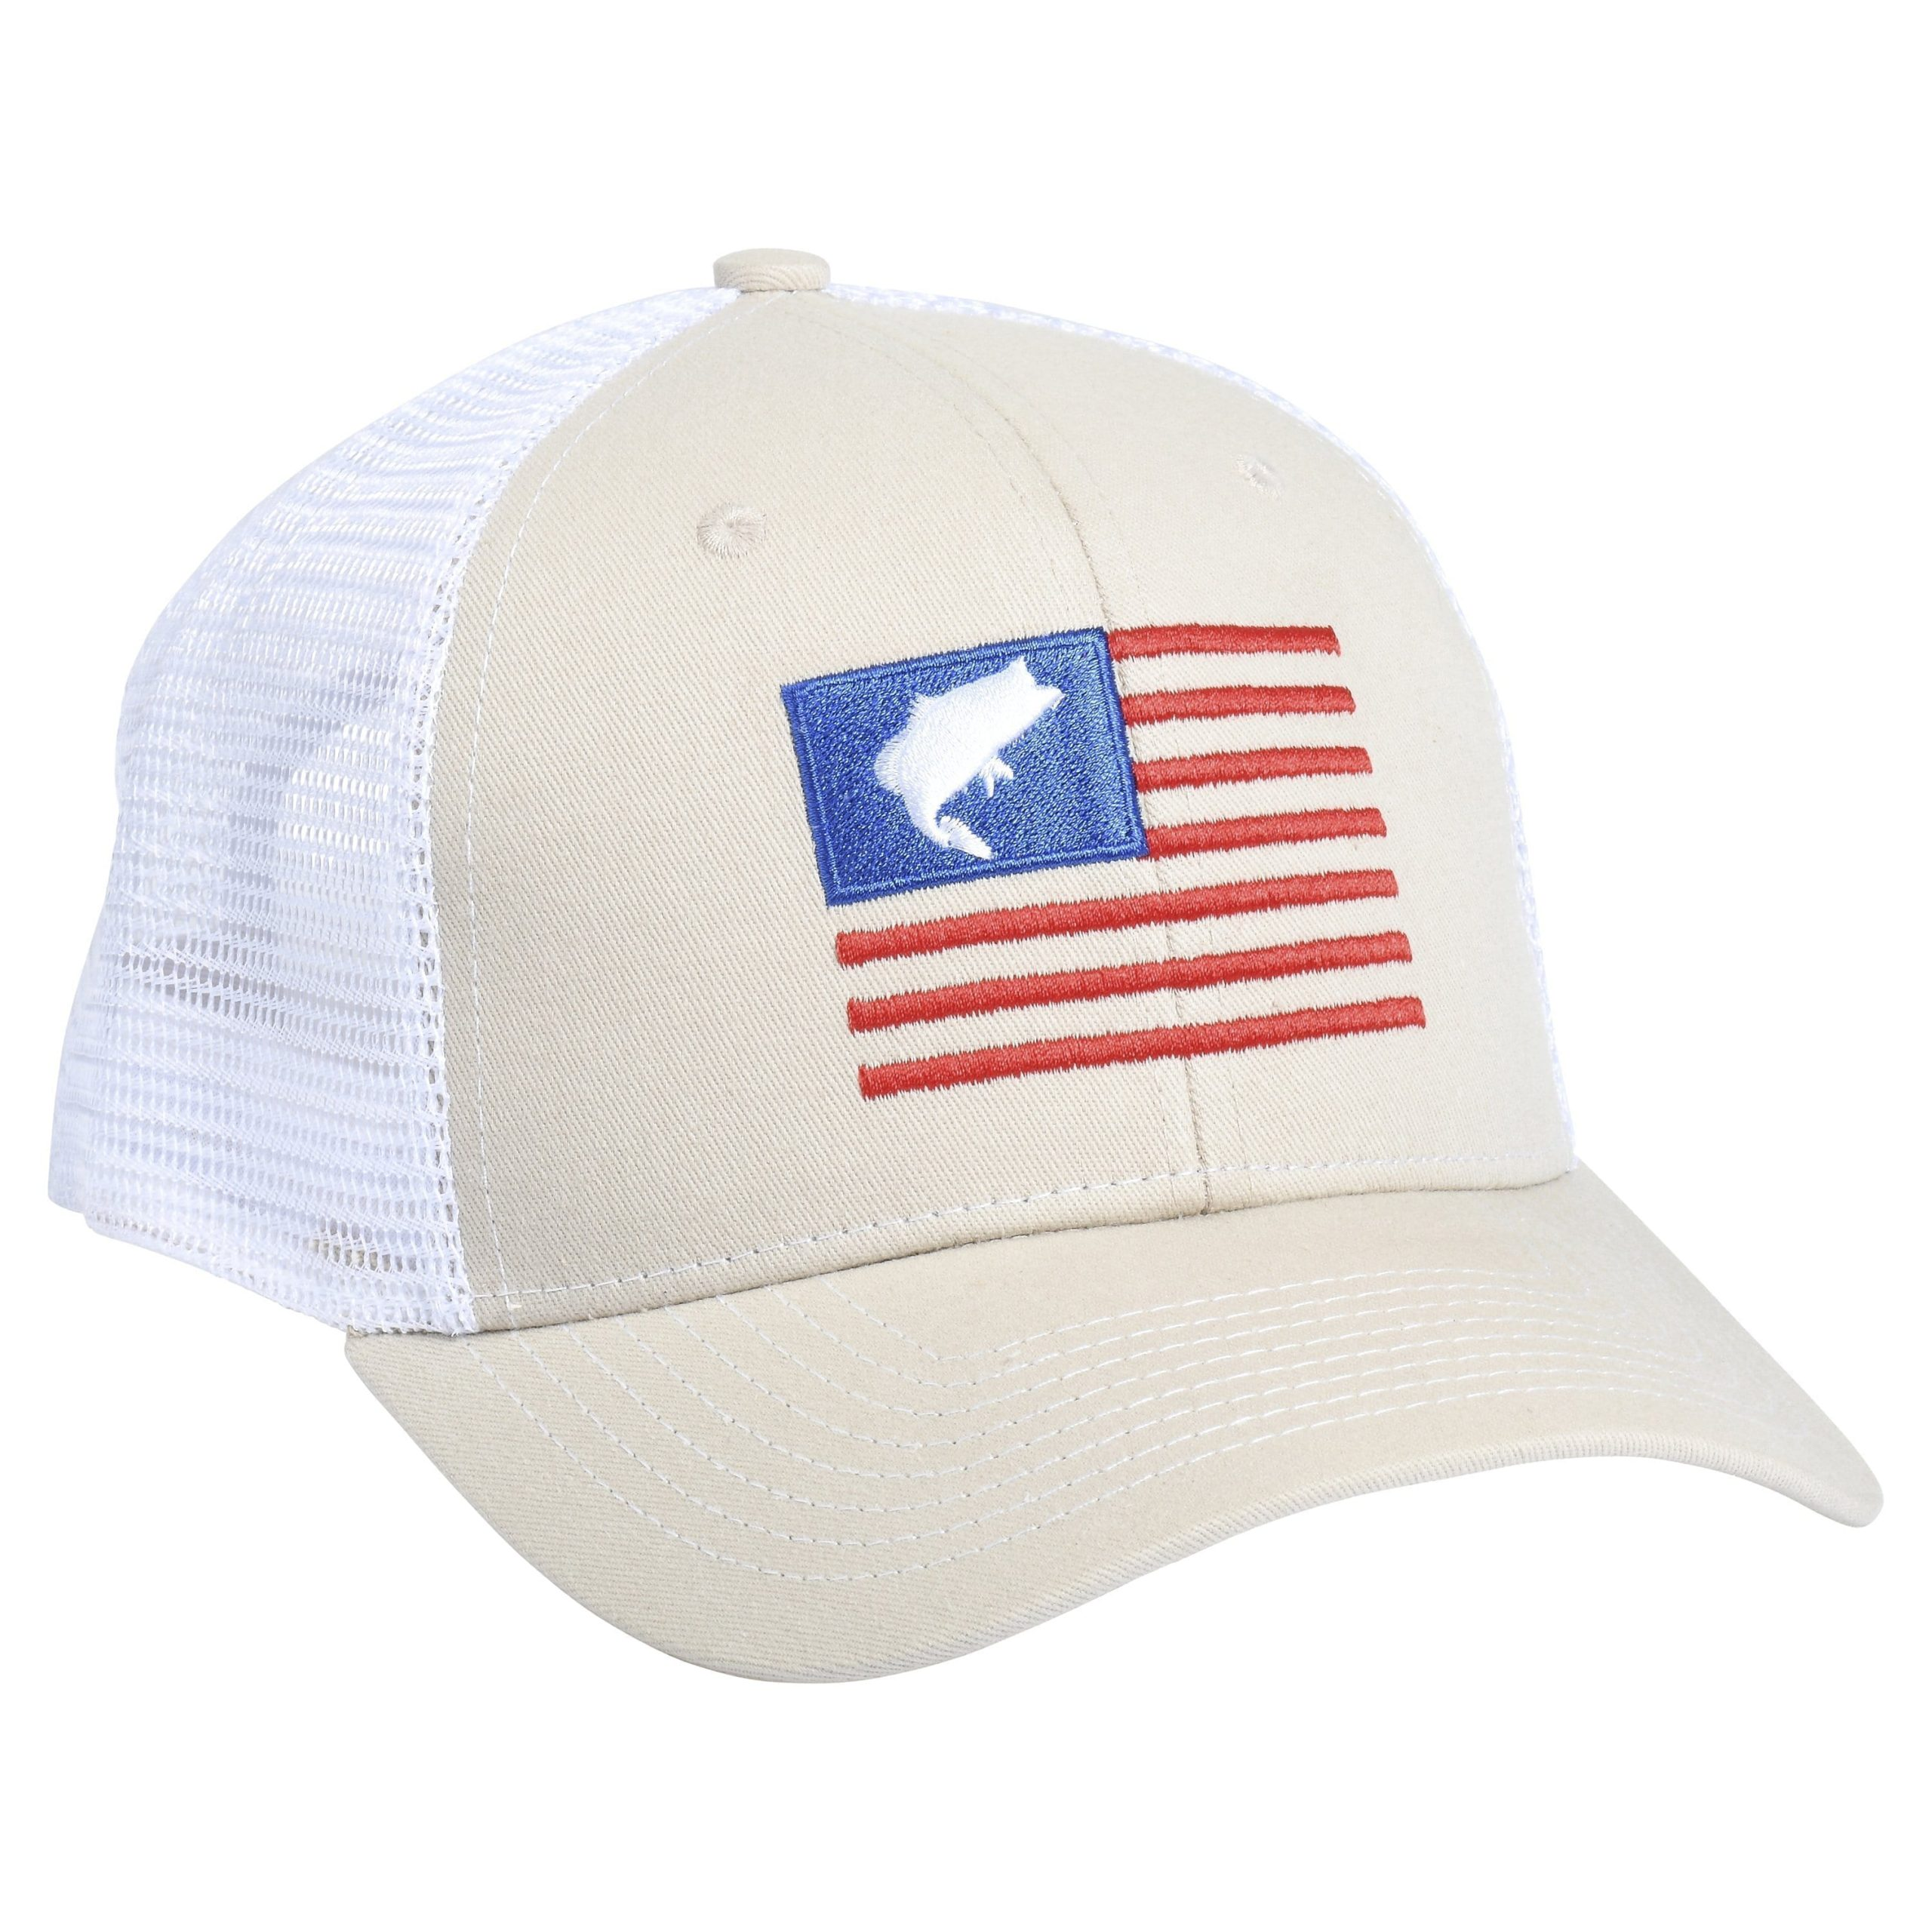 Bass Flag Embroidery Tan/White